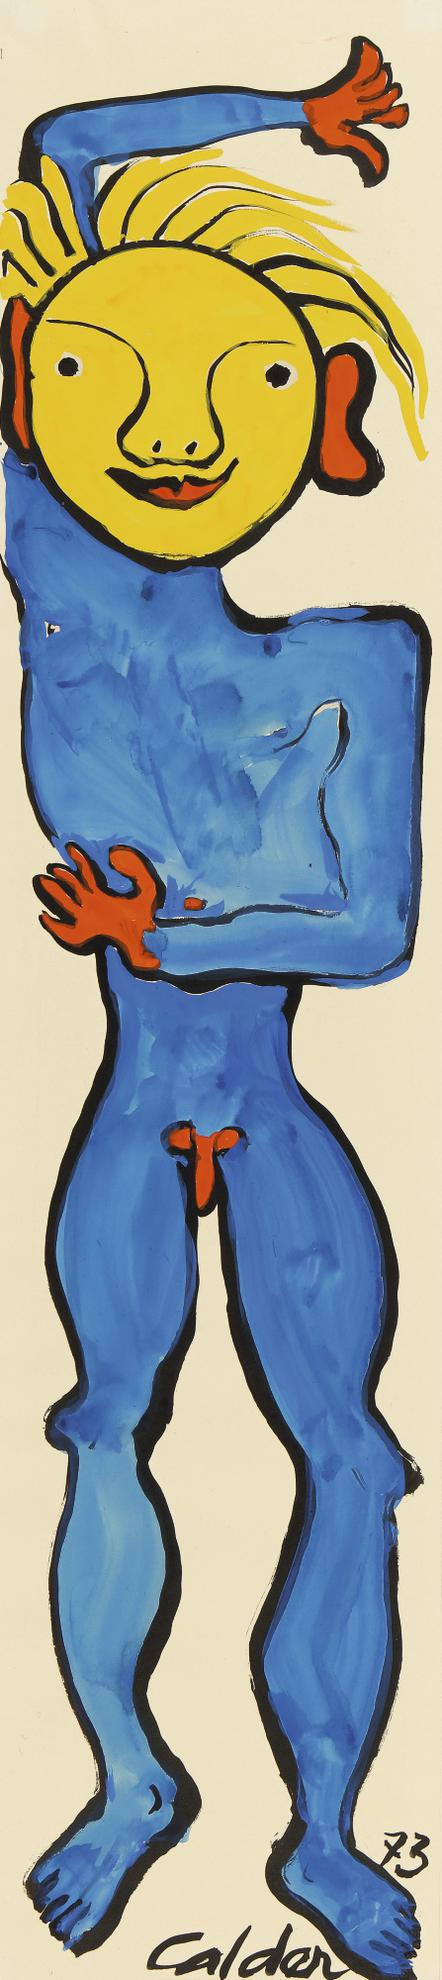 Alexander Calder-The Blue Boy-1973